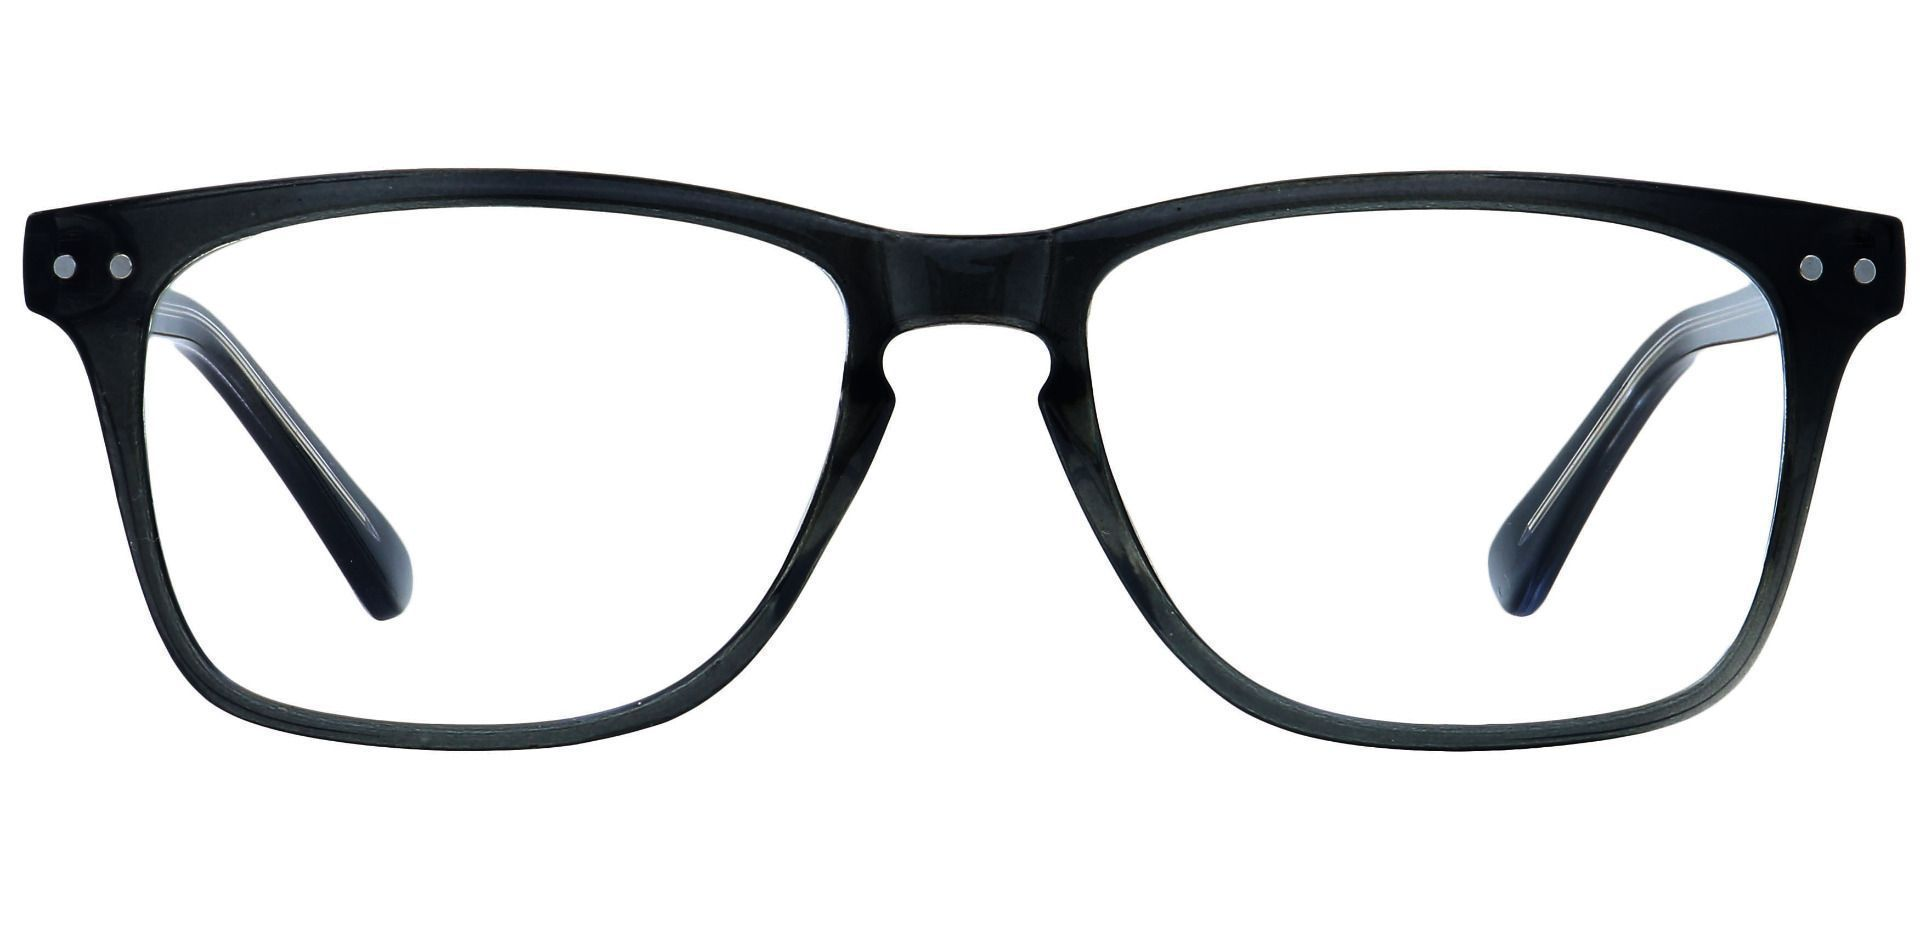 Lauren Oval Prescription Glasses - Black